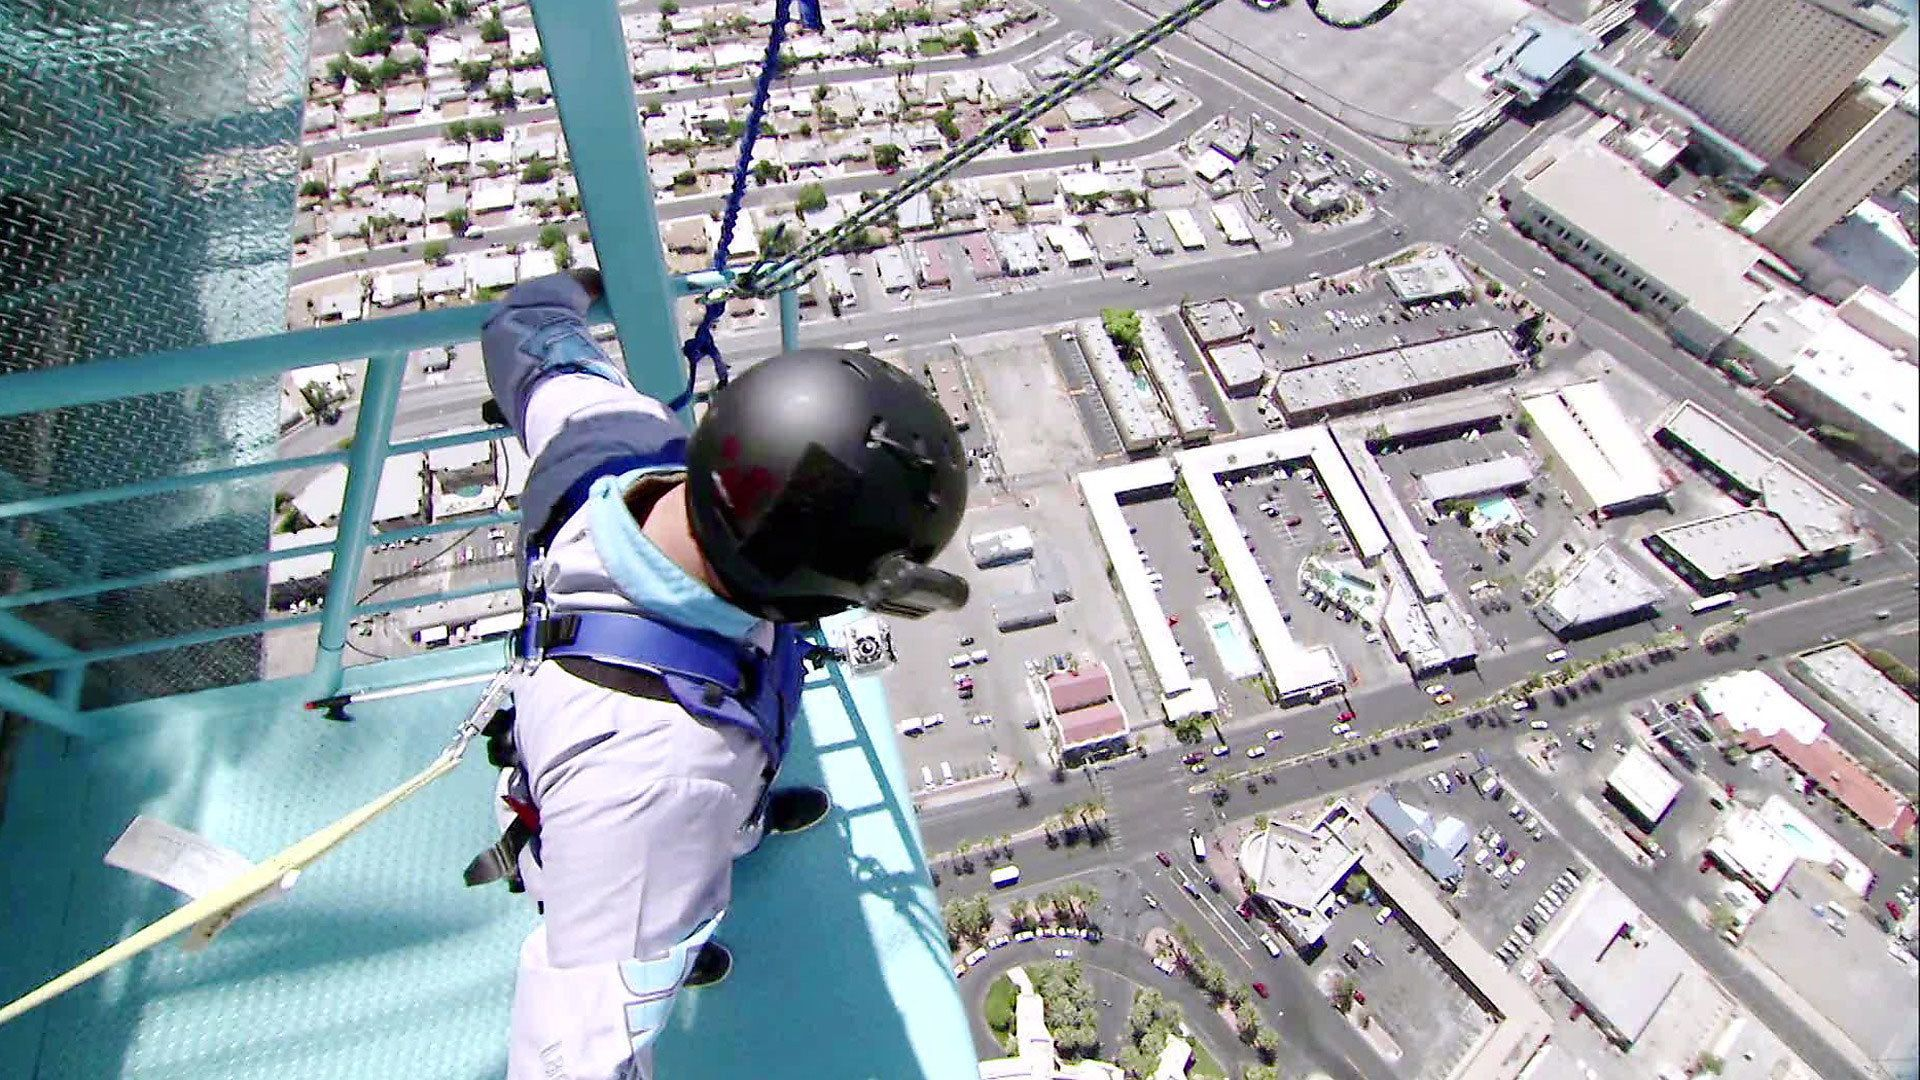 Man about to jump from the Stratosphere in Las Vegas